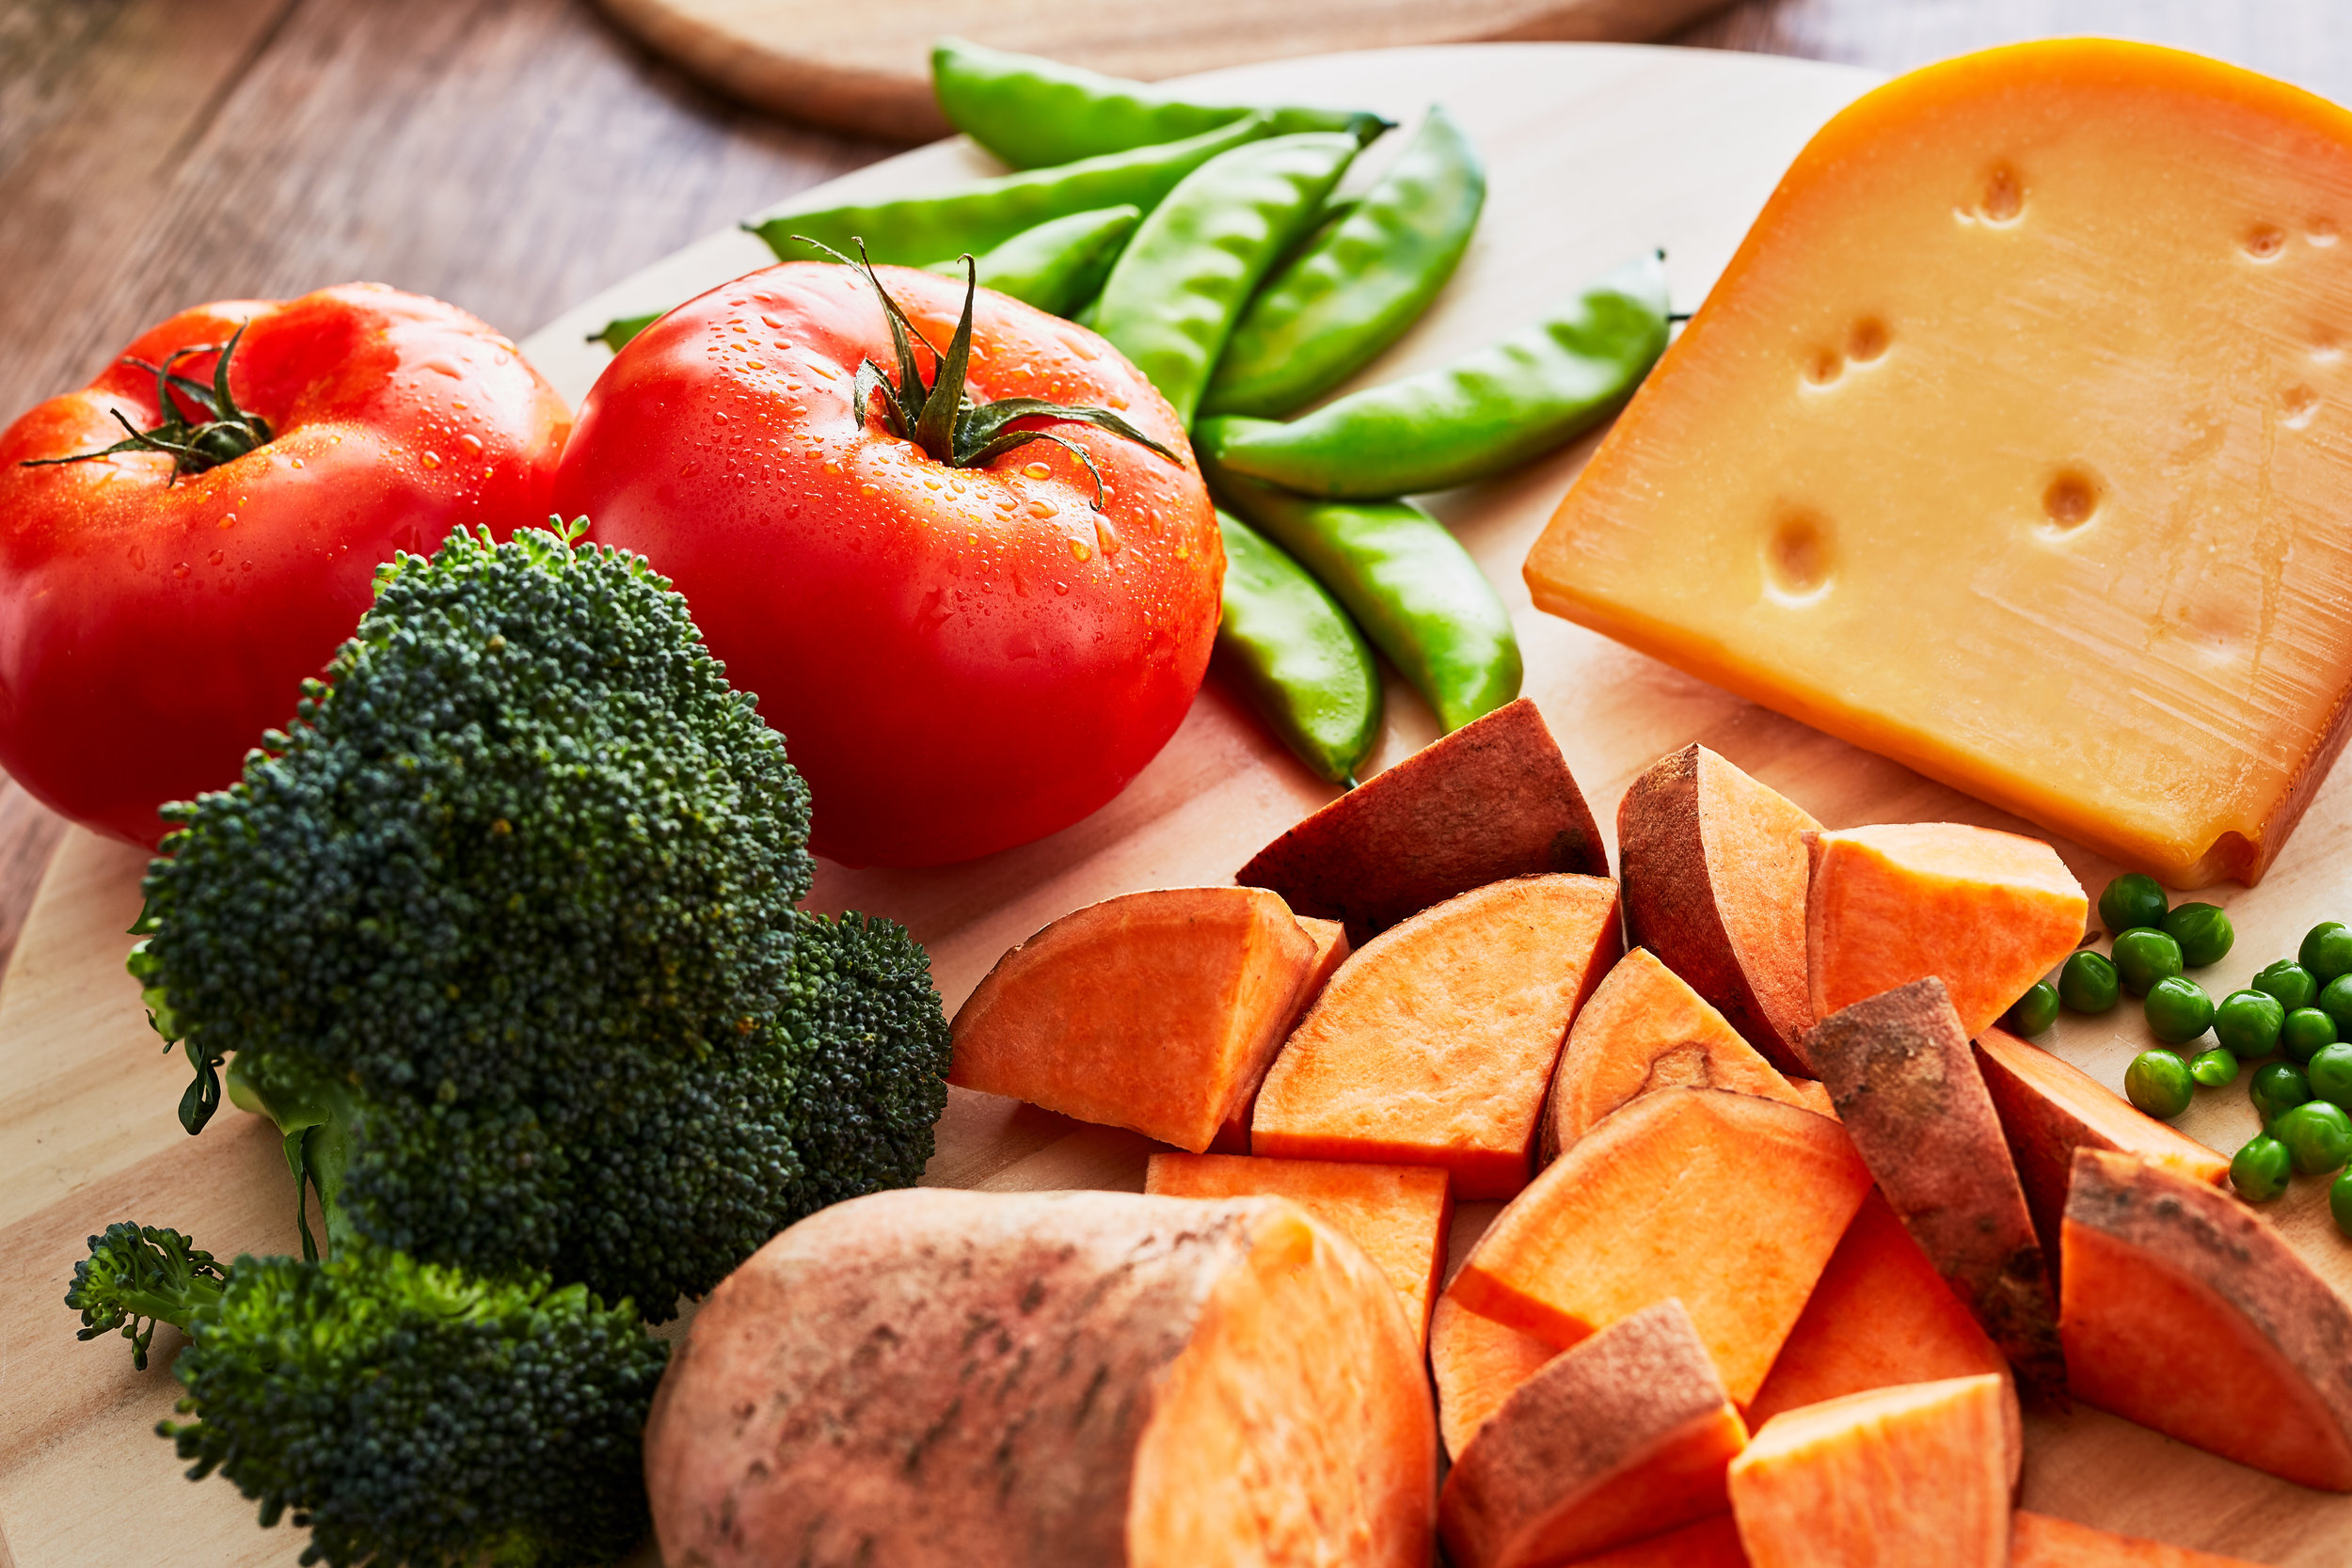 A commercial, lifestyle, fashion, advertising image of fresh ingredients, like tomato, broccoli, sweet potatoe and peas - taken by Javier Edwards of El Roi Photo, in Miami, Florida